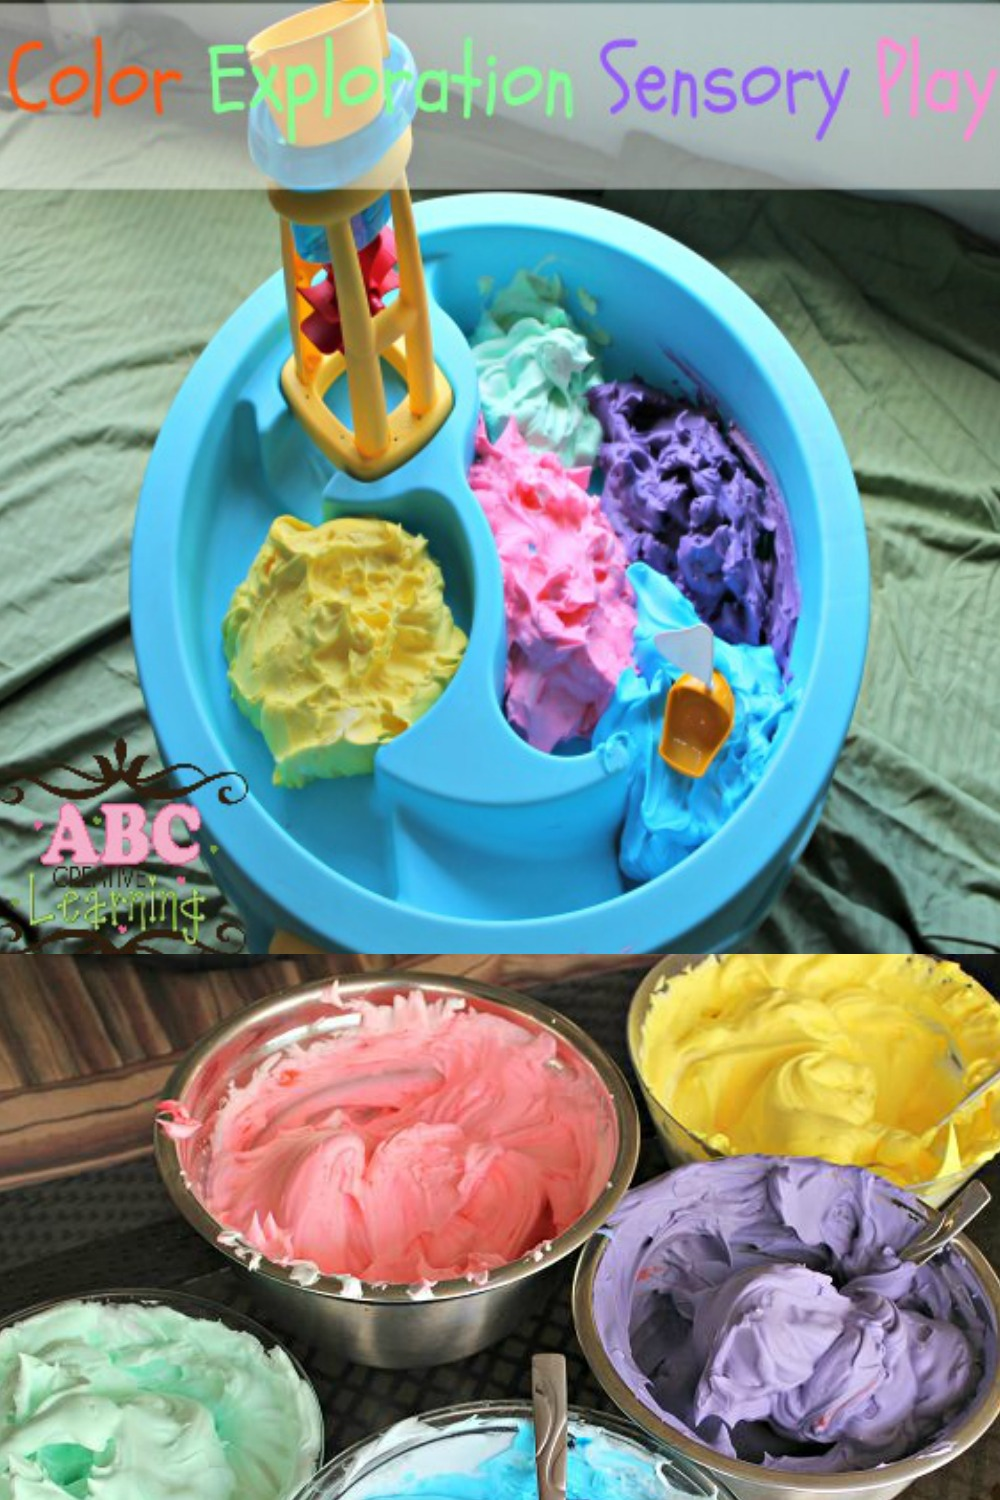 Color Exploration Sensory Play